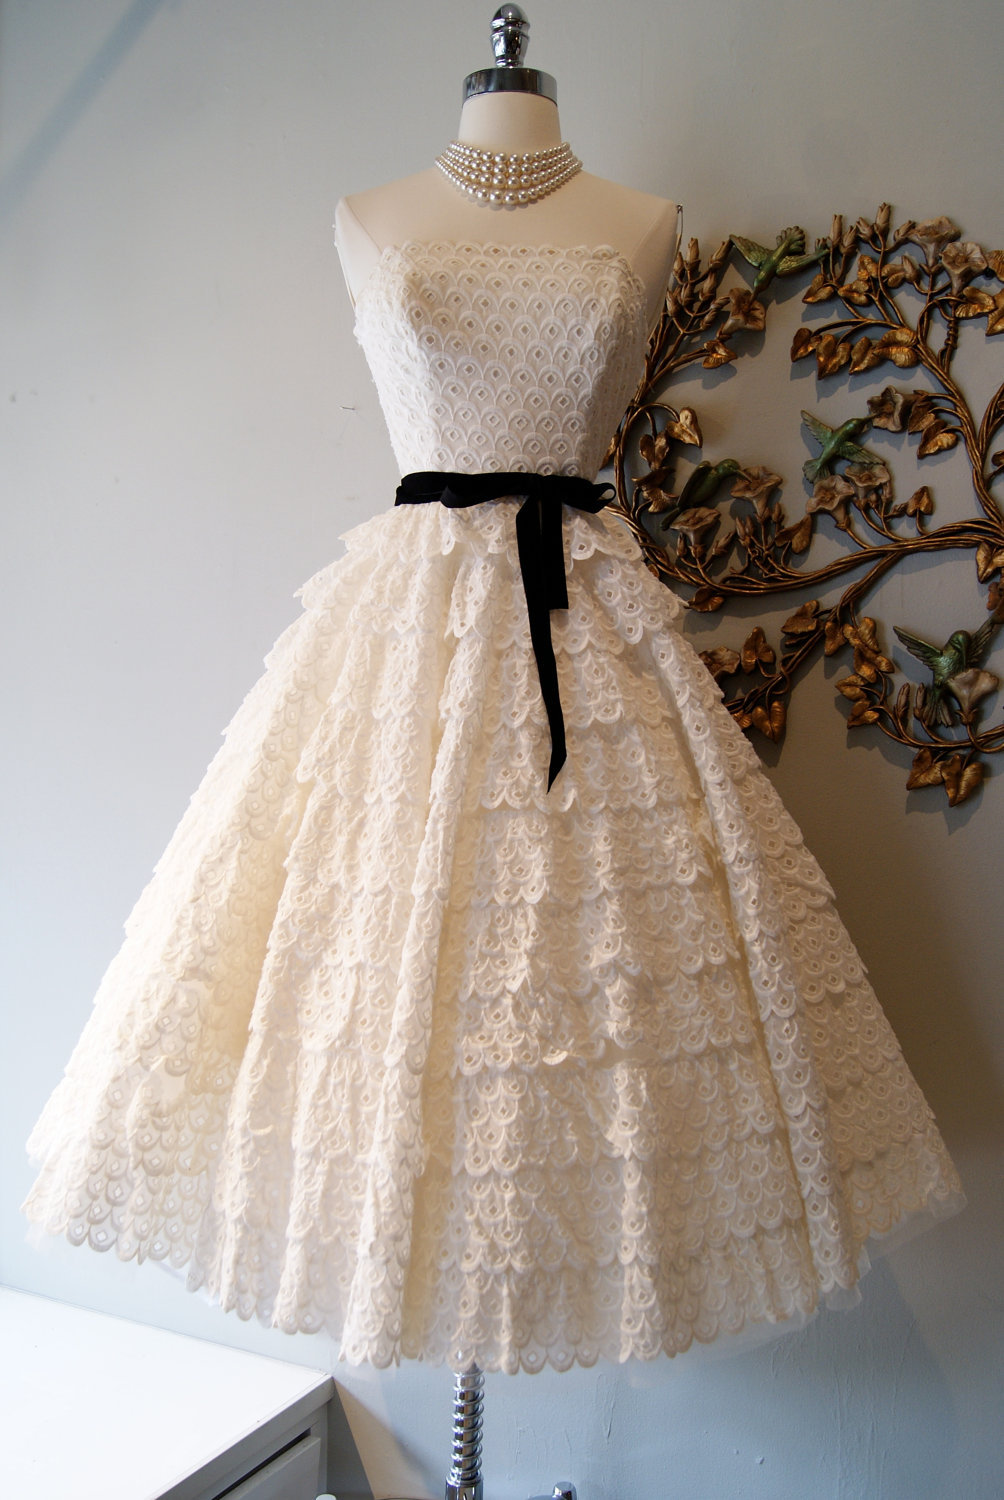 Vintage-wedding-dress-bridal-gown-inspiration-from-etsy-lace-eyelit-1950s-black-sash.full